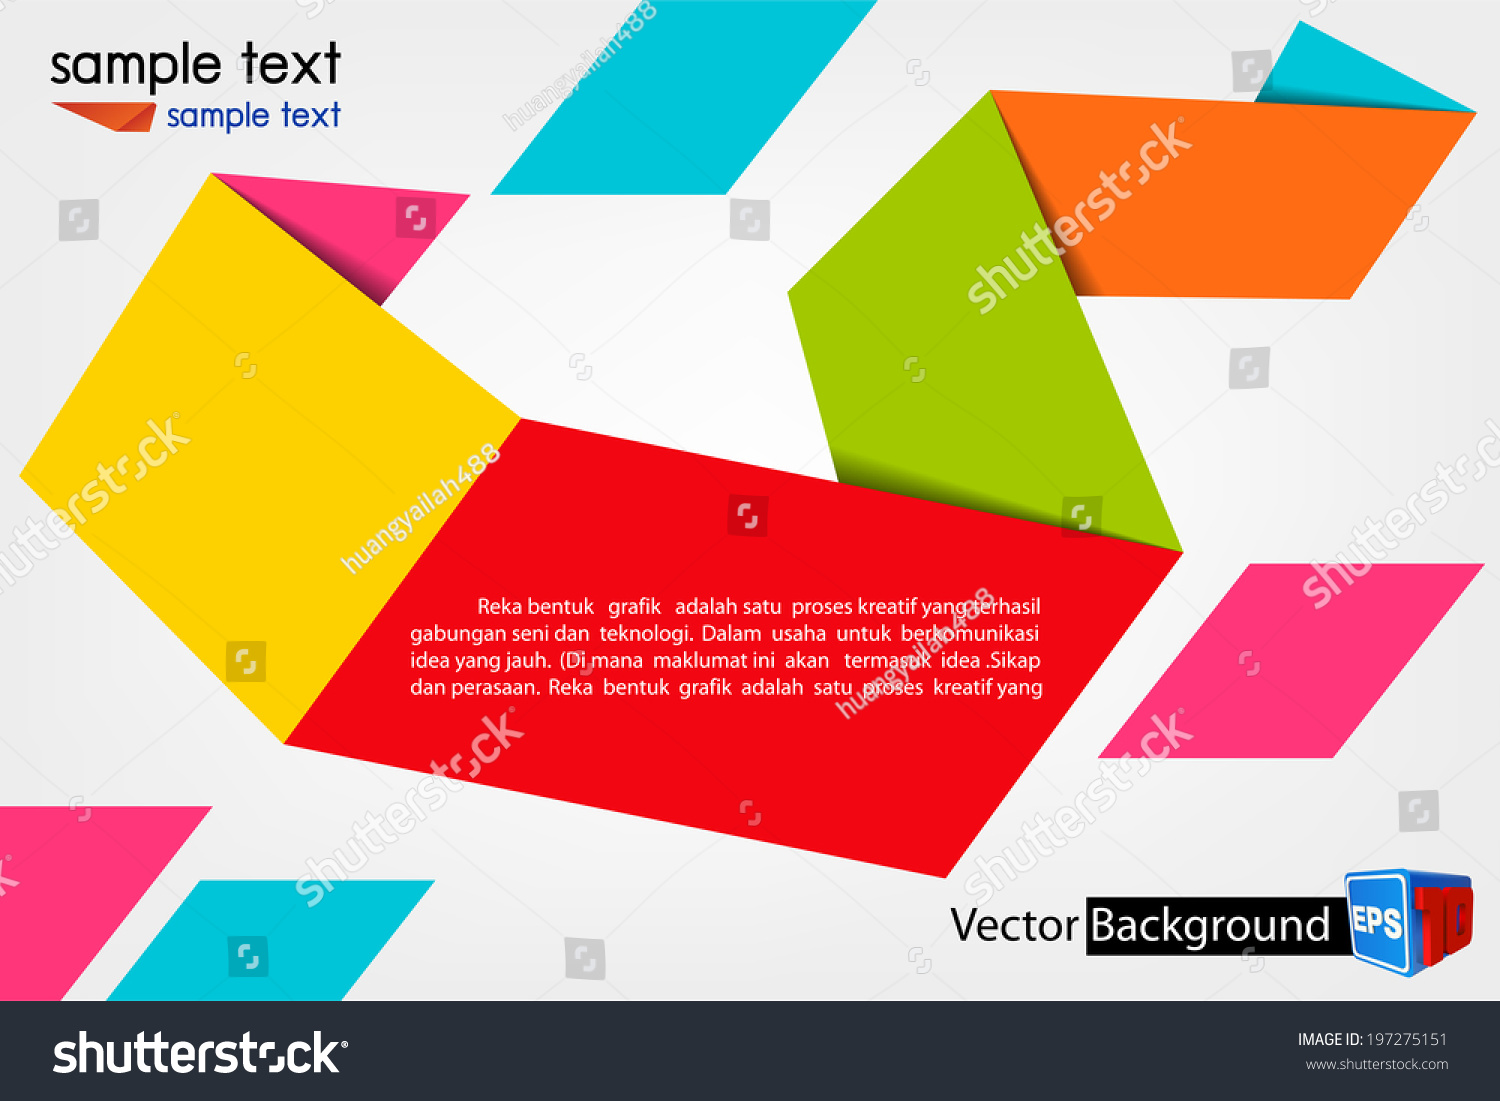 Modern design template business brochure abstract stock vector 2018 modern design template business brochure abstract background eps10 ccuart Image collections